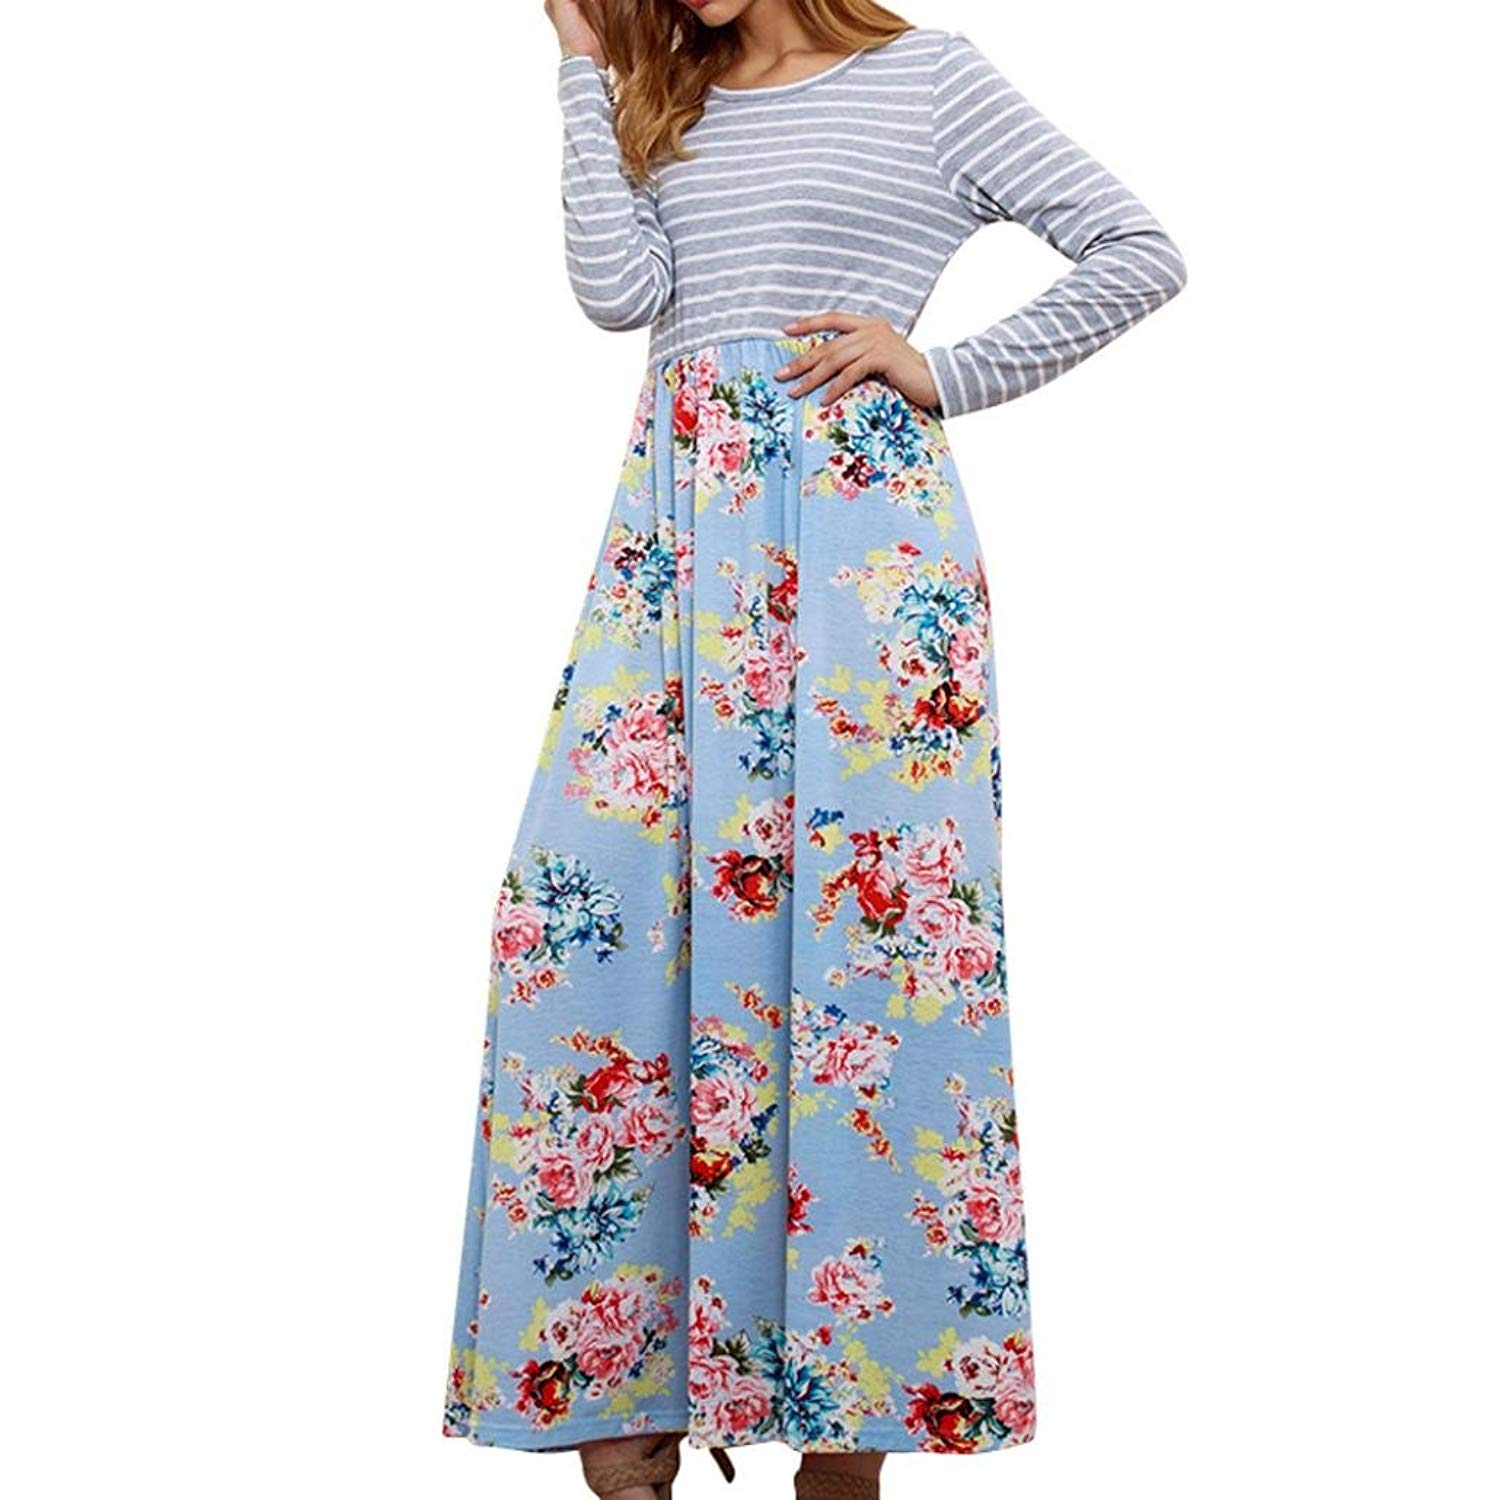 7bcc037b1 Buy Howstar Women  39 s Long Sleeve Maxi Dress with Pockets Casual Loose  T-Shirt Dresses Floral Print Pleated Dress in Cheap Price on m.alibaba.com